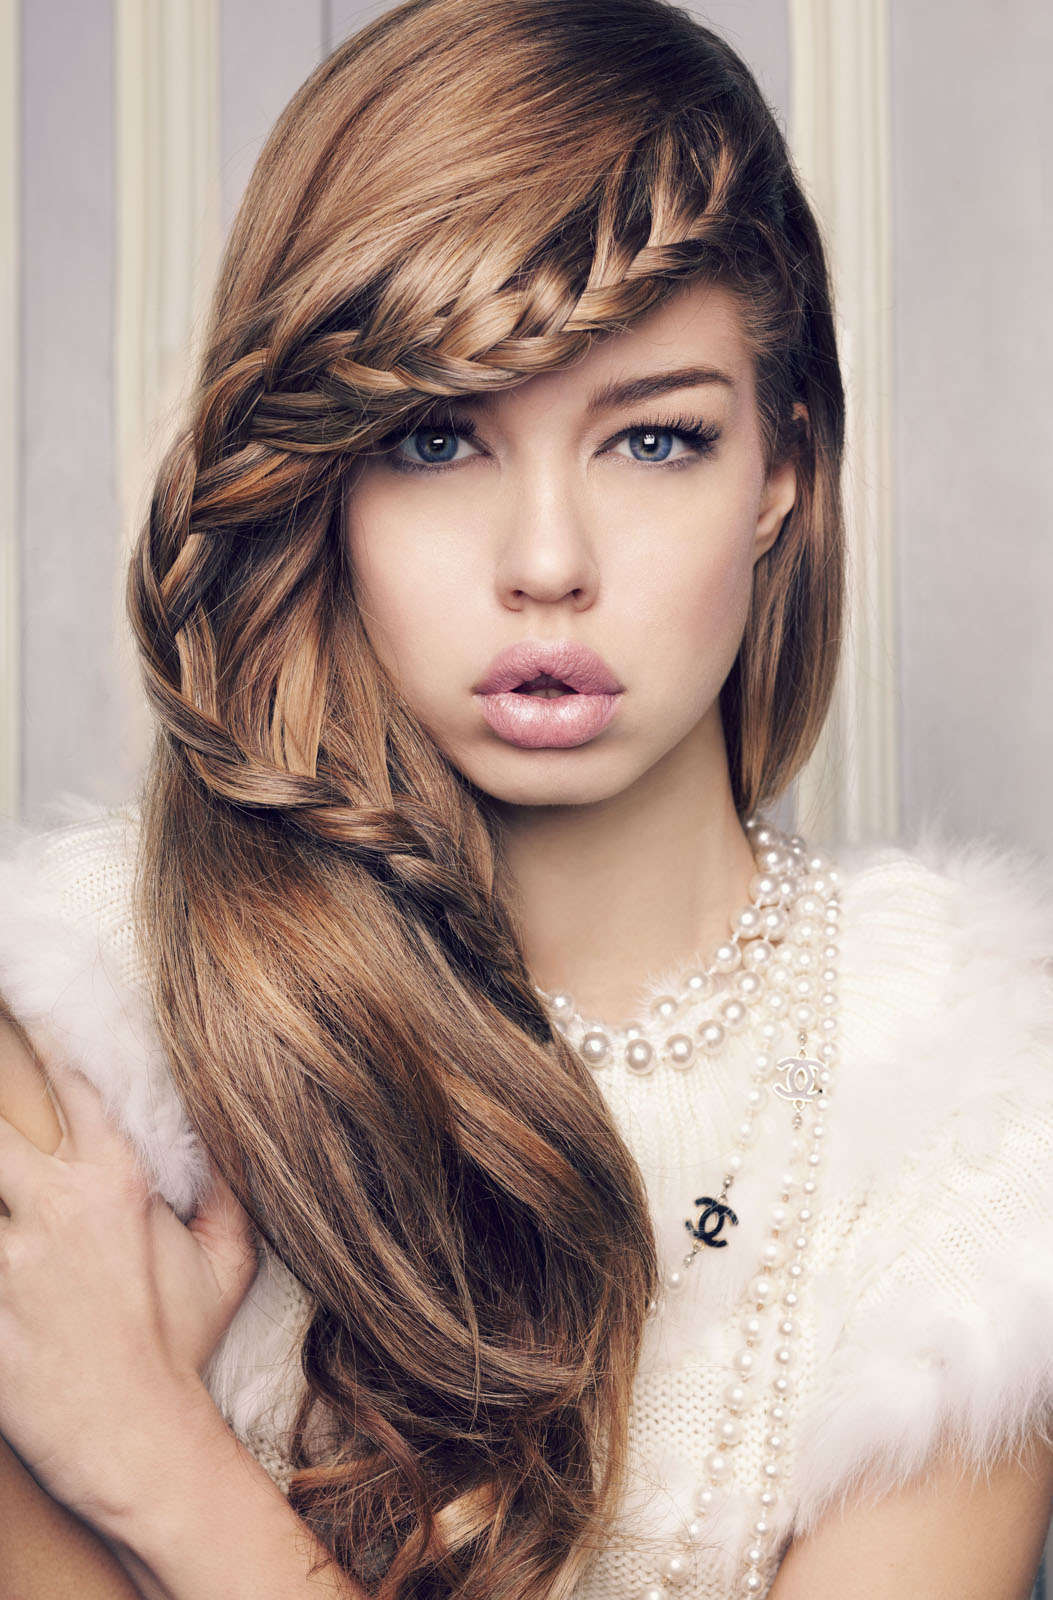 Superb 30 Cute Braided Hairstyles Style Arena Hairstyles For Women Draintrainus